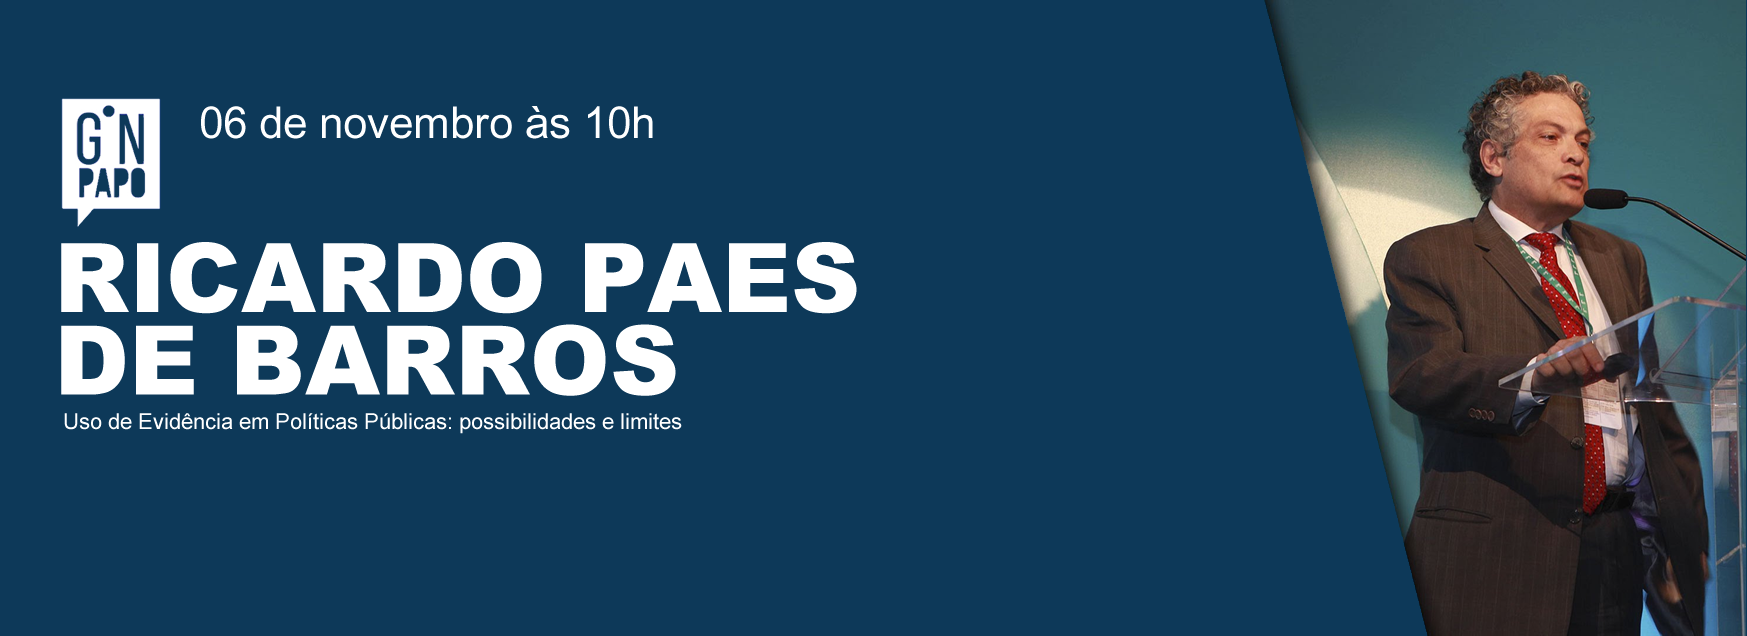 ricardo-paes-gnpappo.png